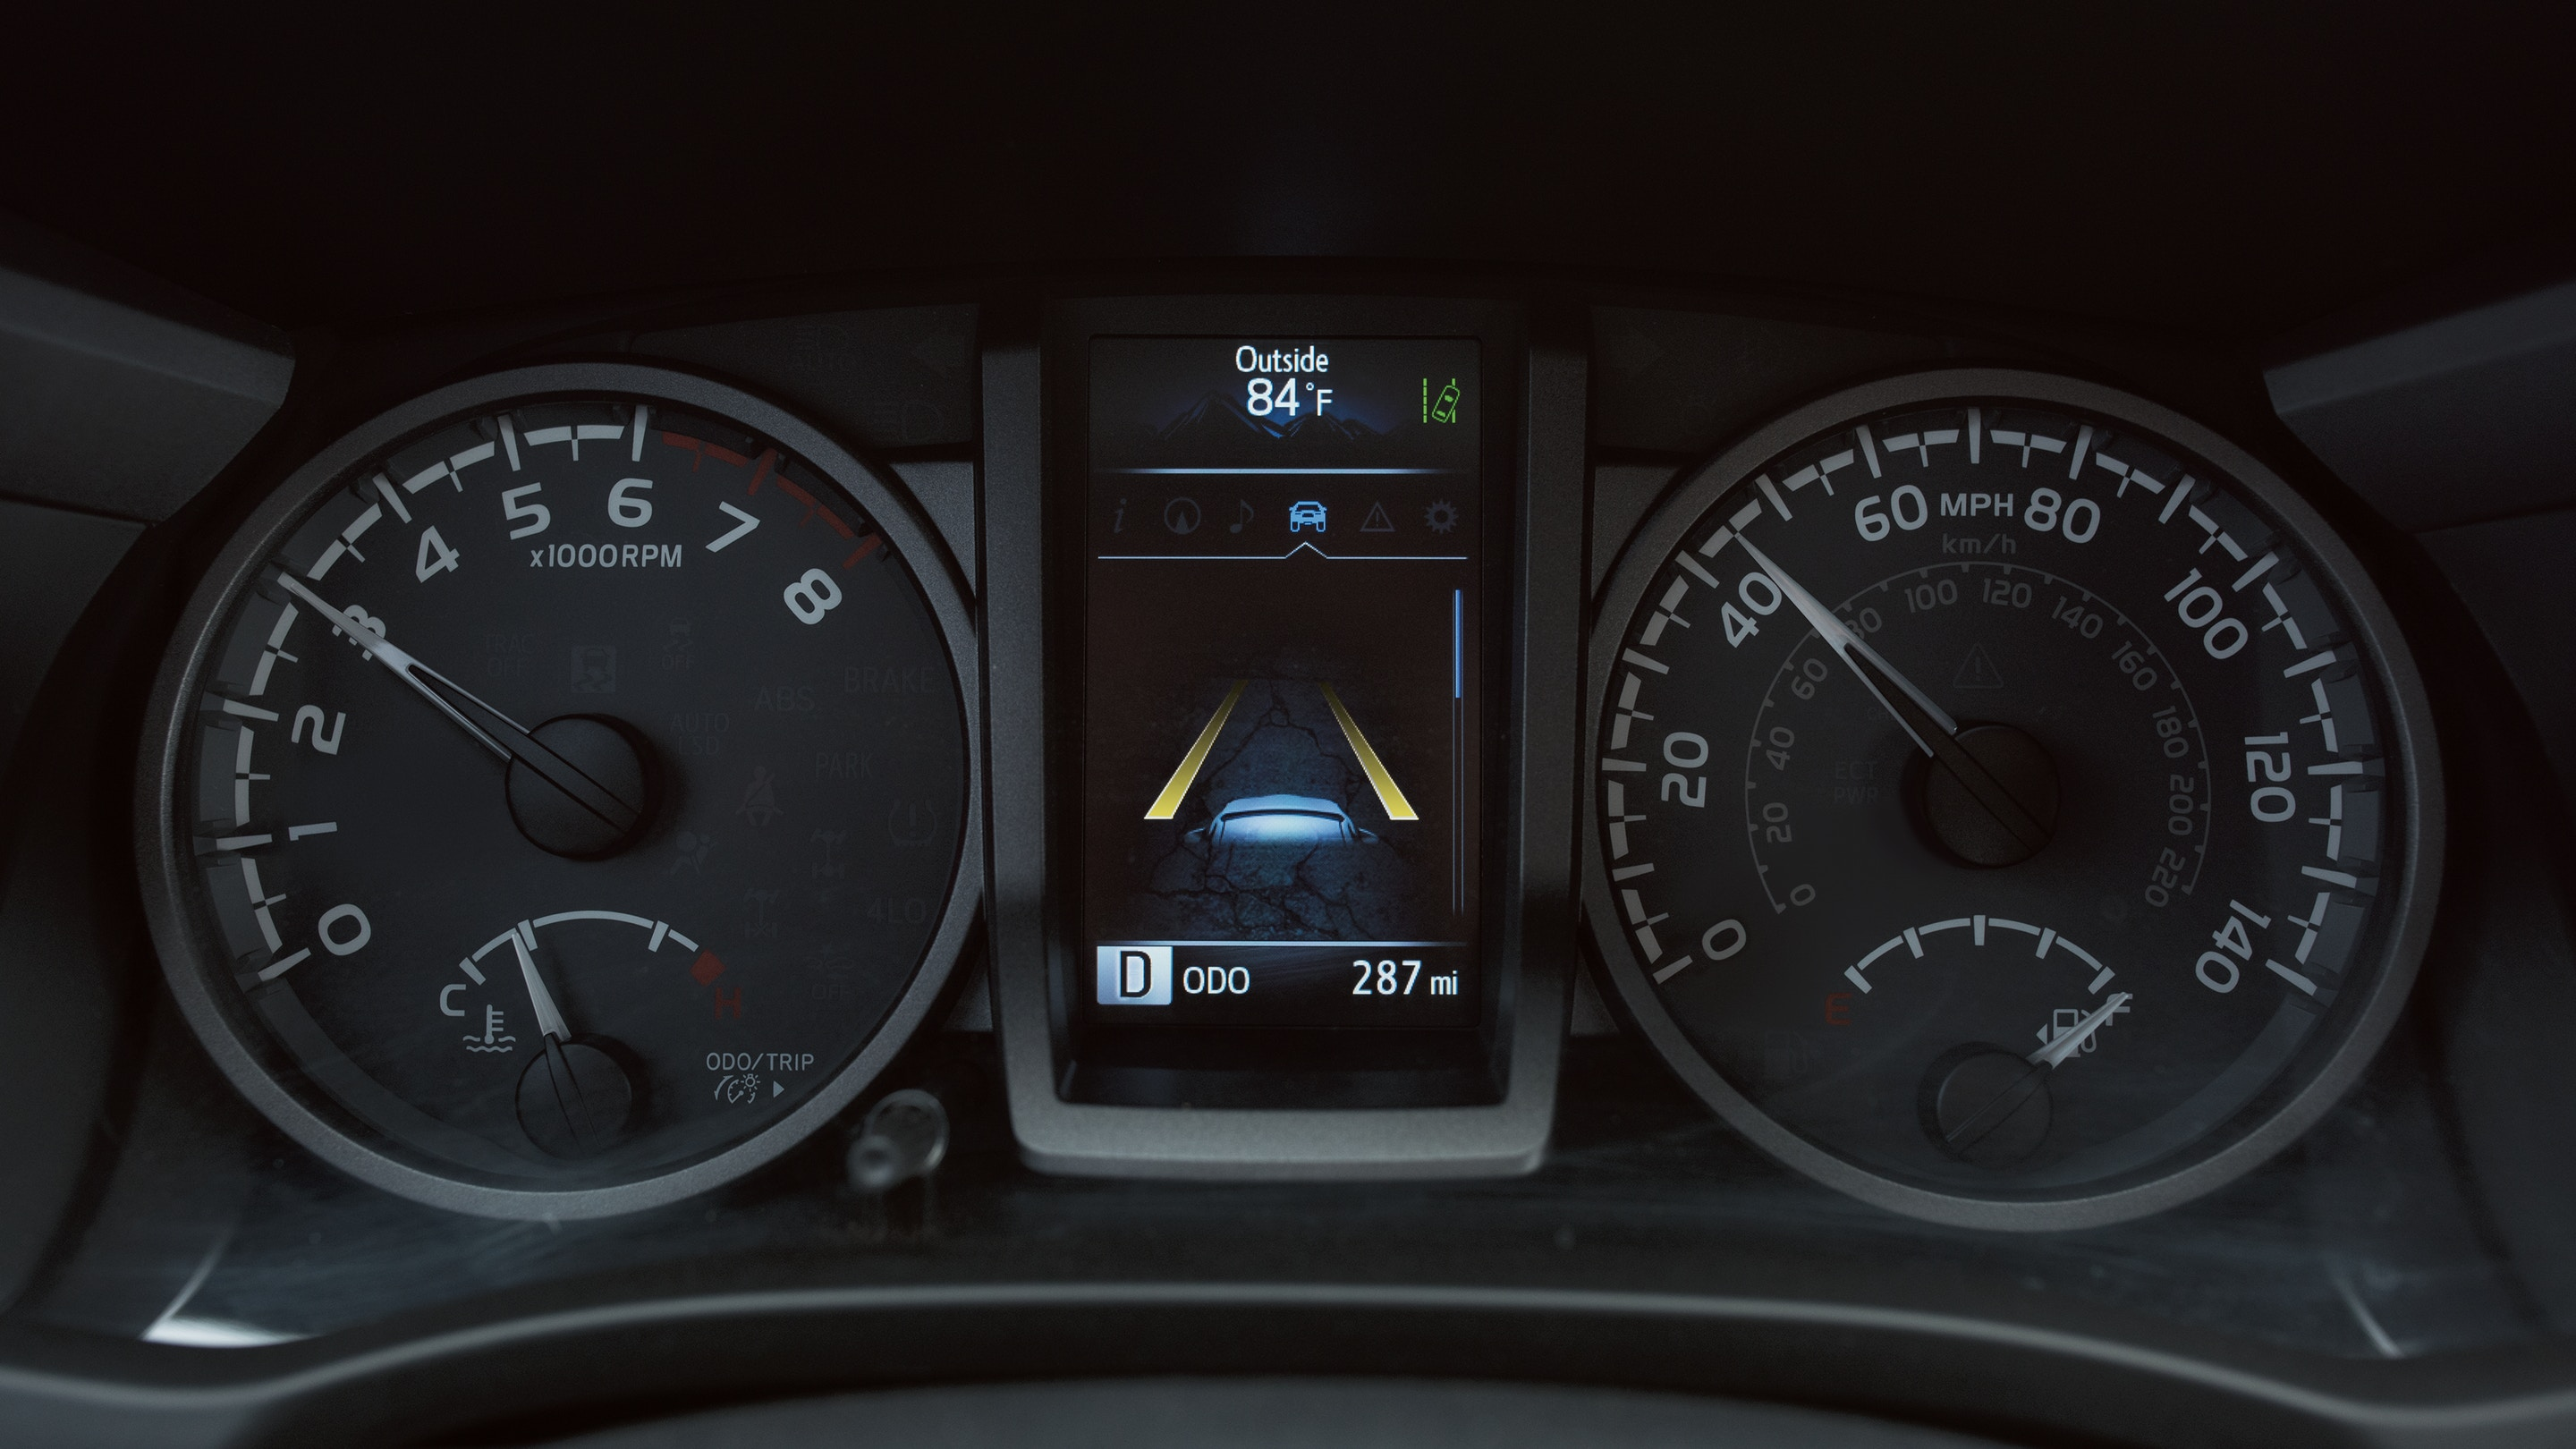 2019 Toyota Tacoma Infotainment Cluster